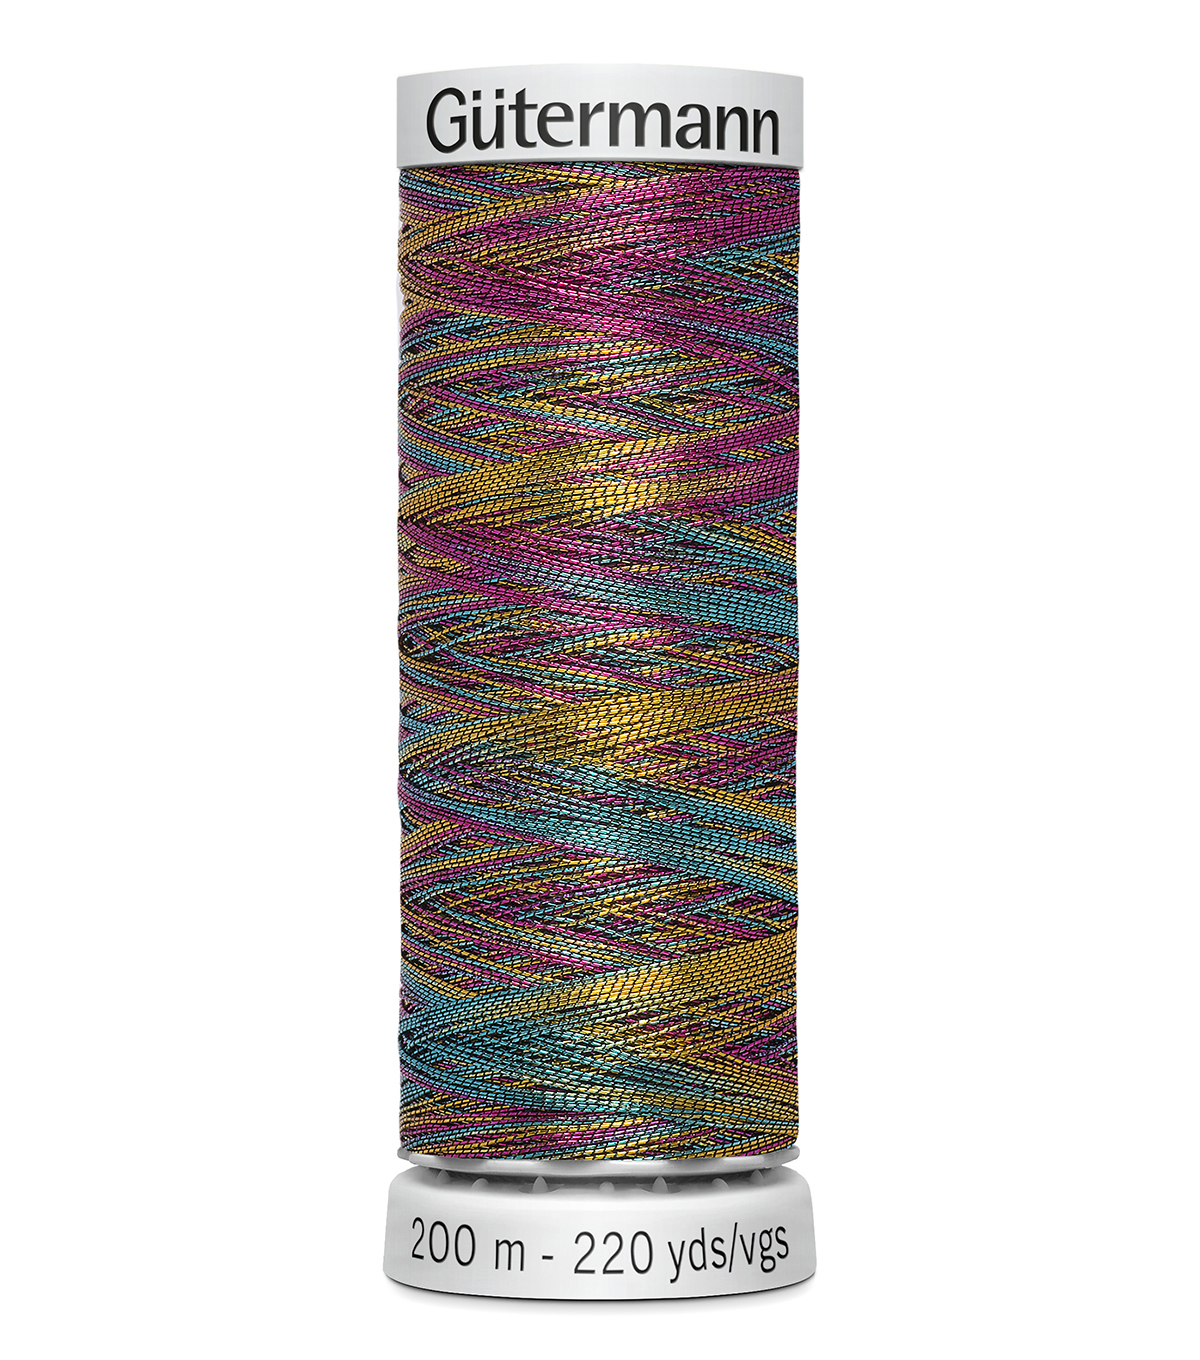 Gutermann 200M Dekor Thread, 200m Dekor Metallic-variegated